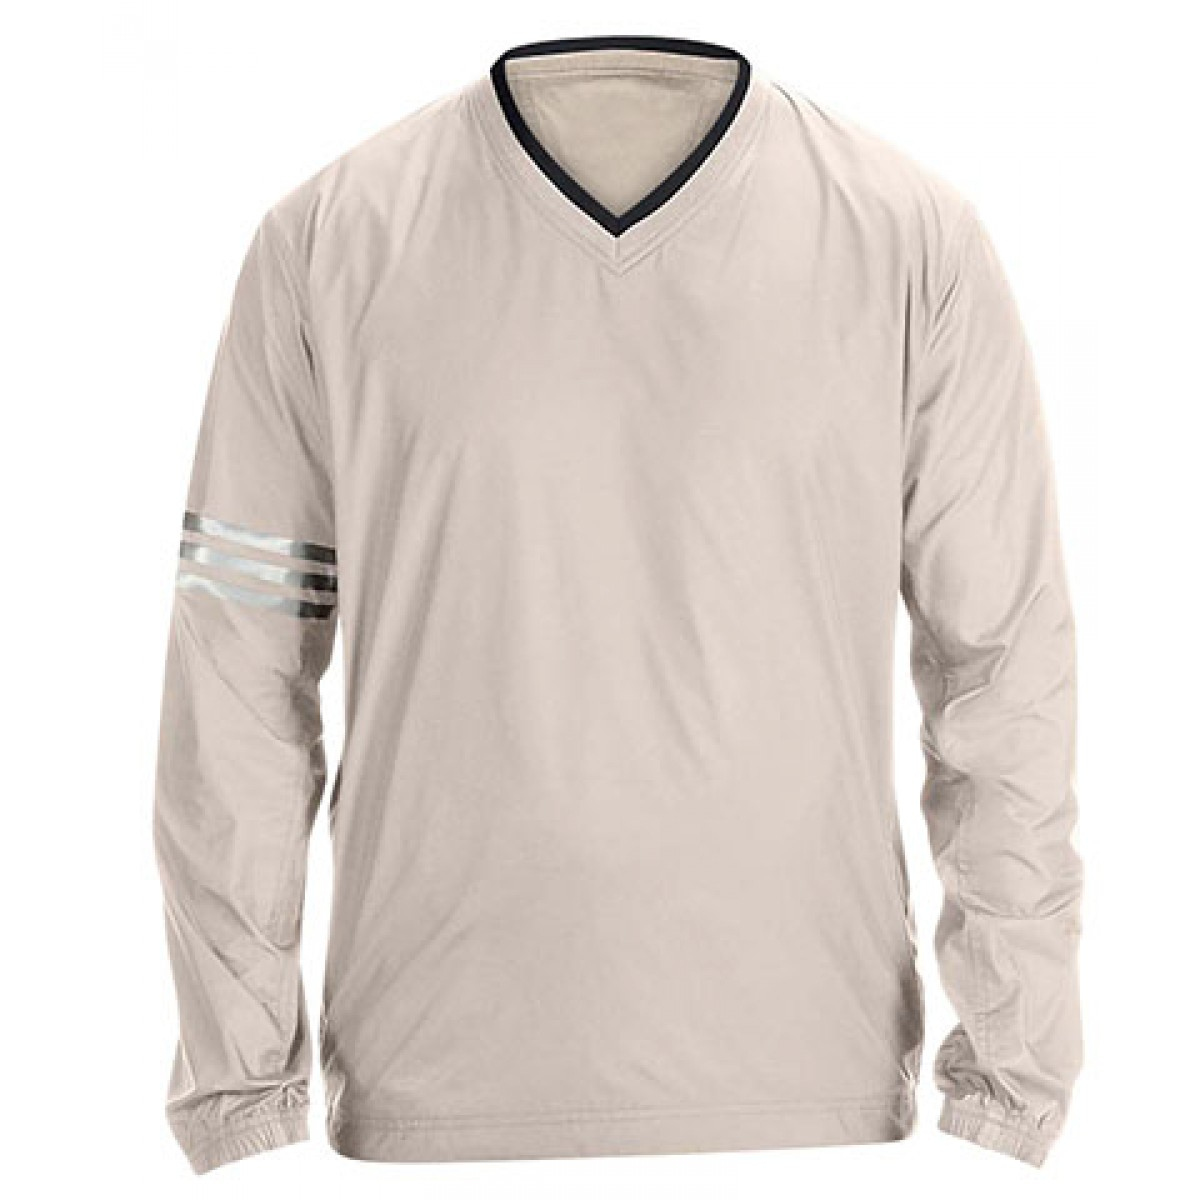 Adidas ClimaLite V-Neck Long Sleeve Wind Shirt-Brown-L